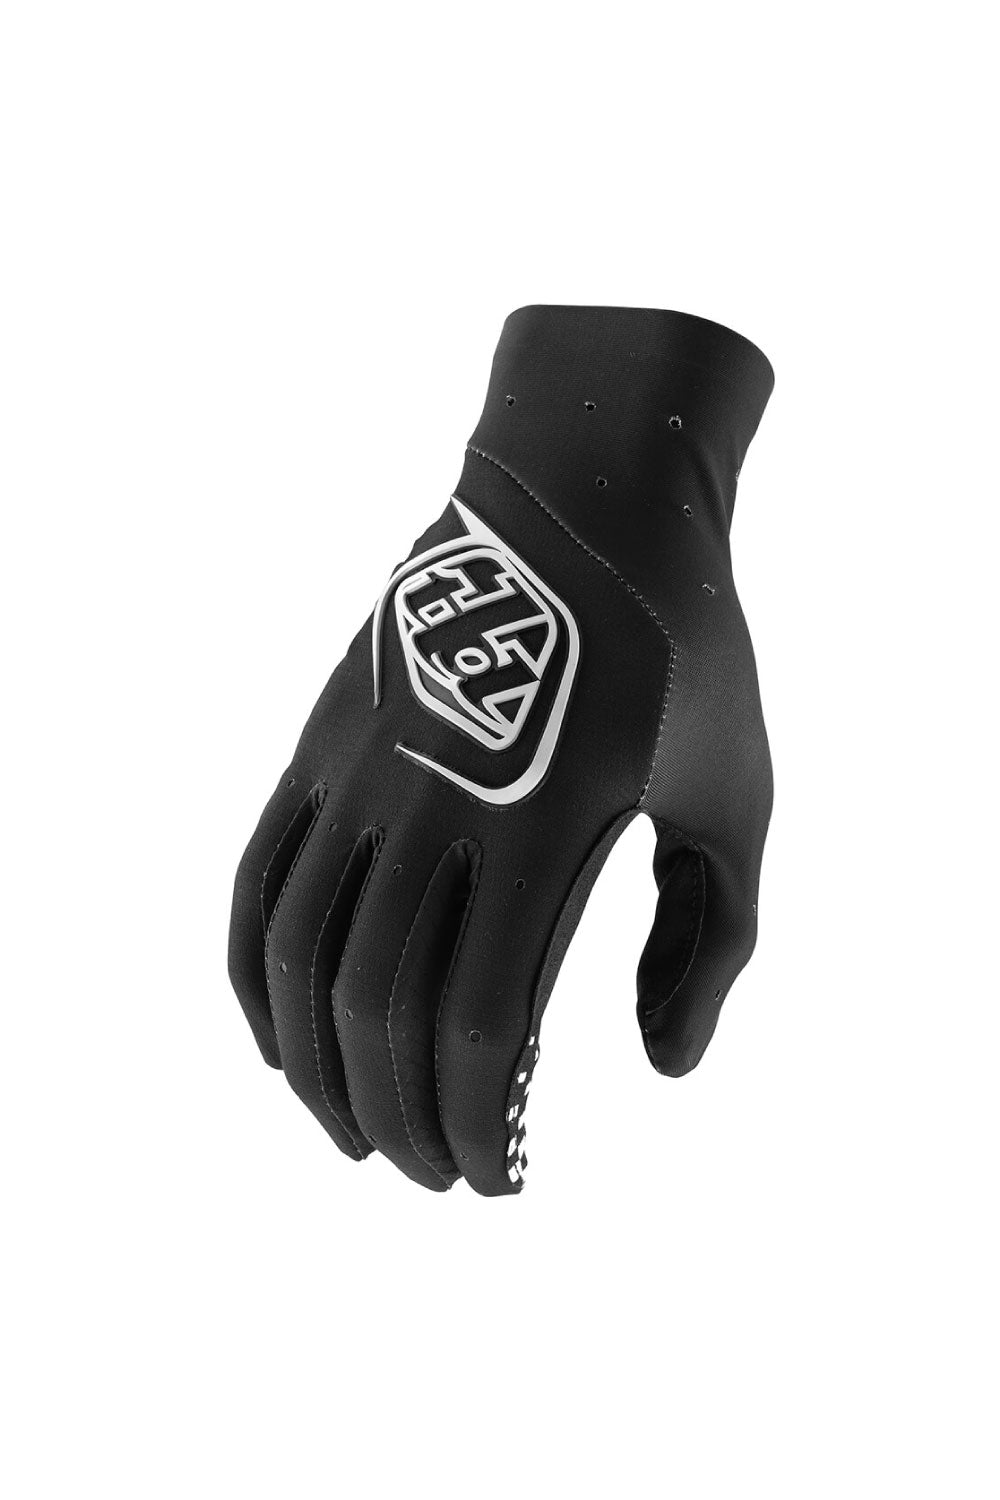 Troy Lee Designs 2020 SE Ultra MTB Bike Gloves